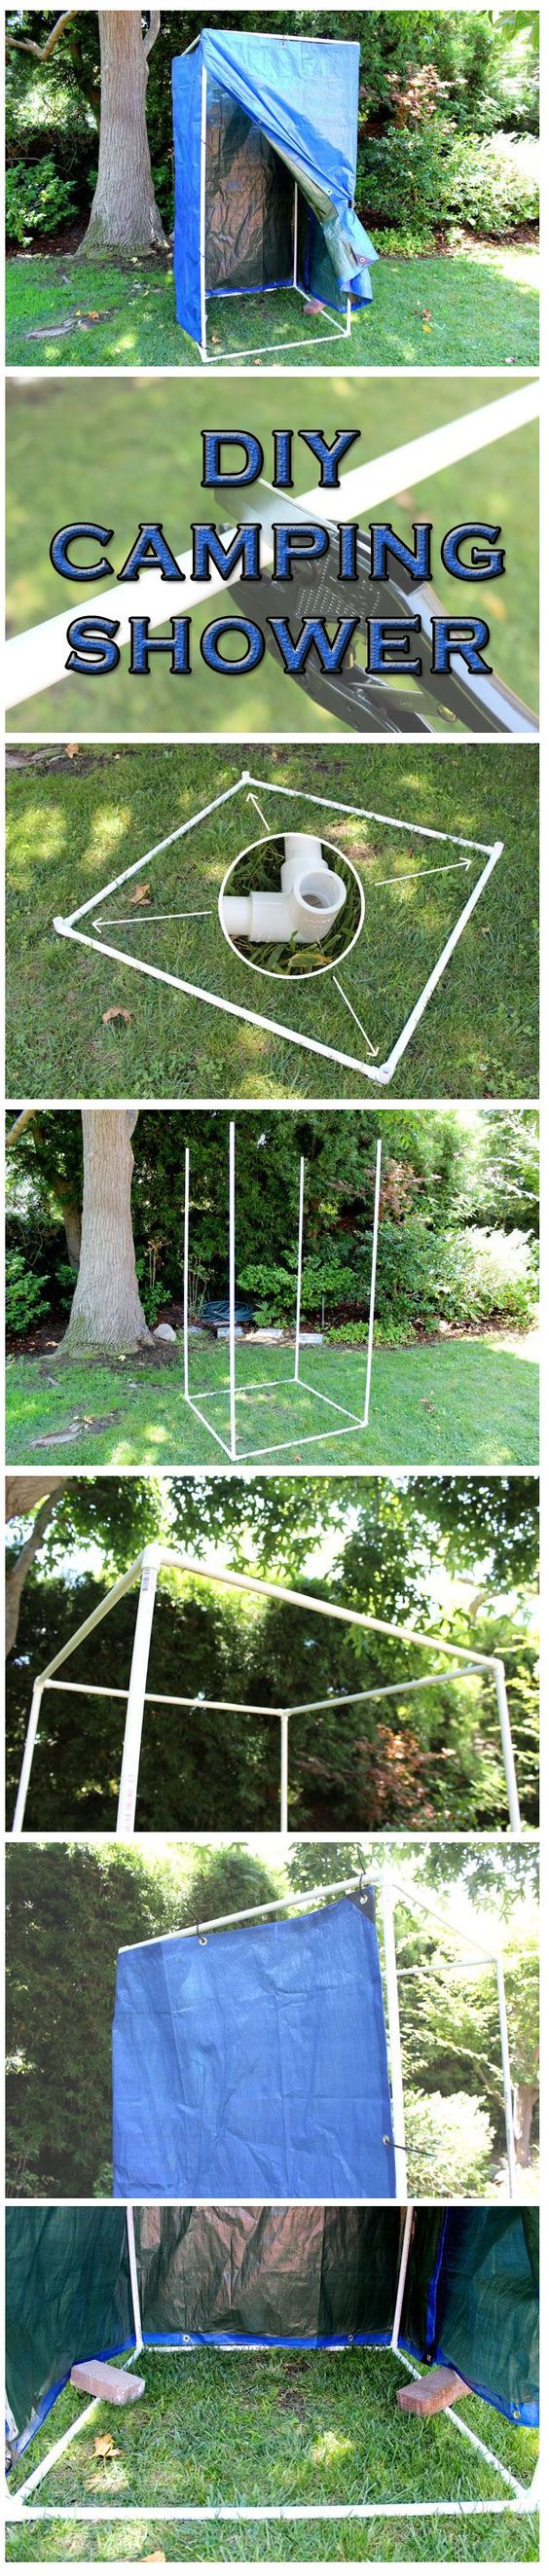 diy camping shower